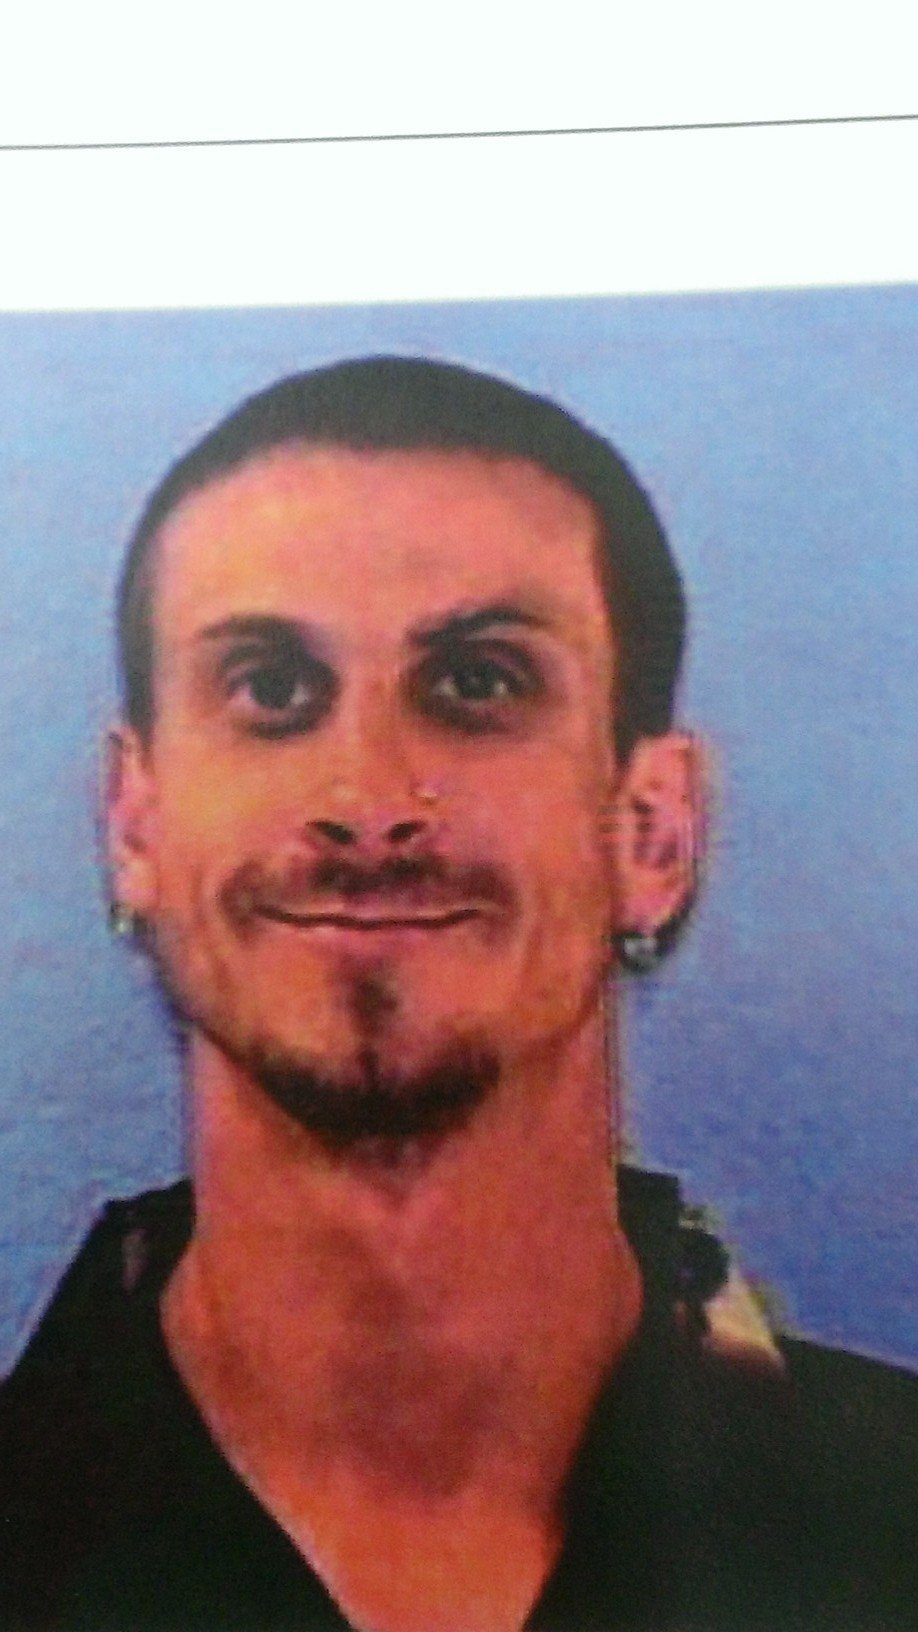 Daniel Lee Cook, the suspect police are searching for. (Source: Phoenix Police Department)